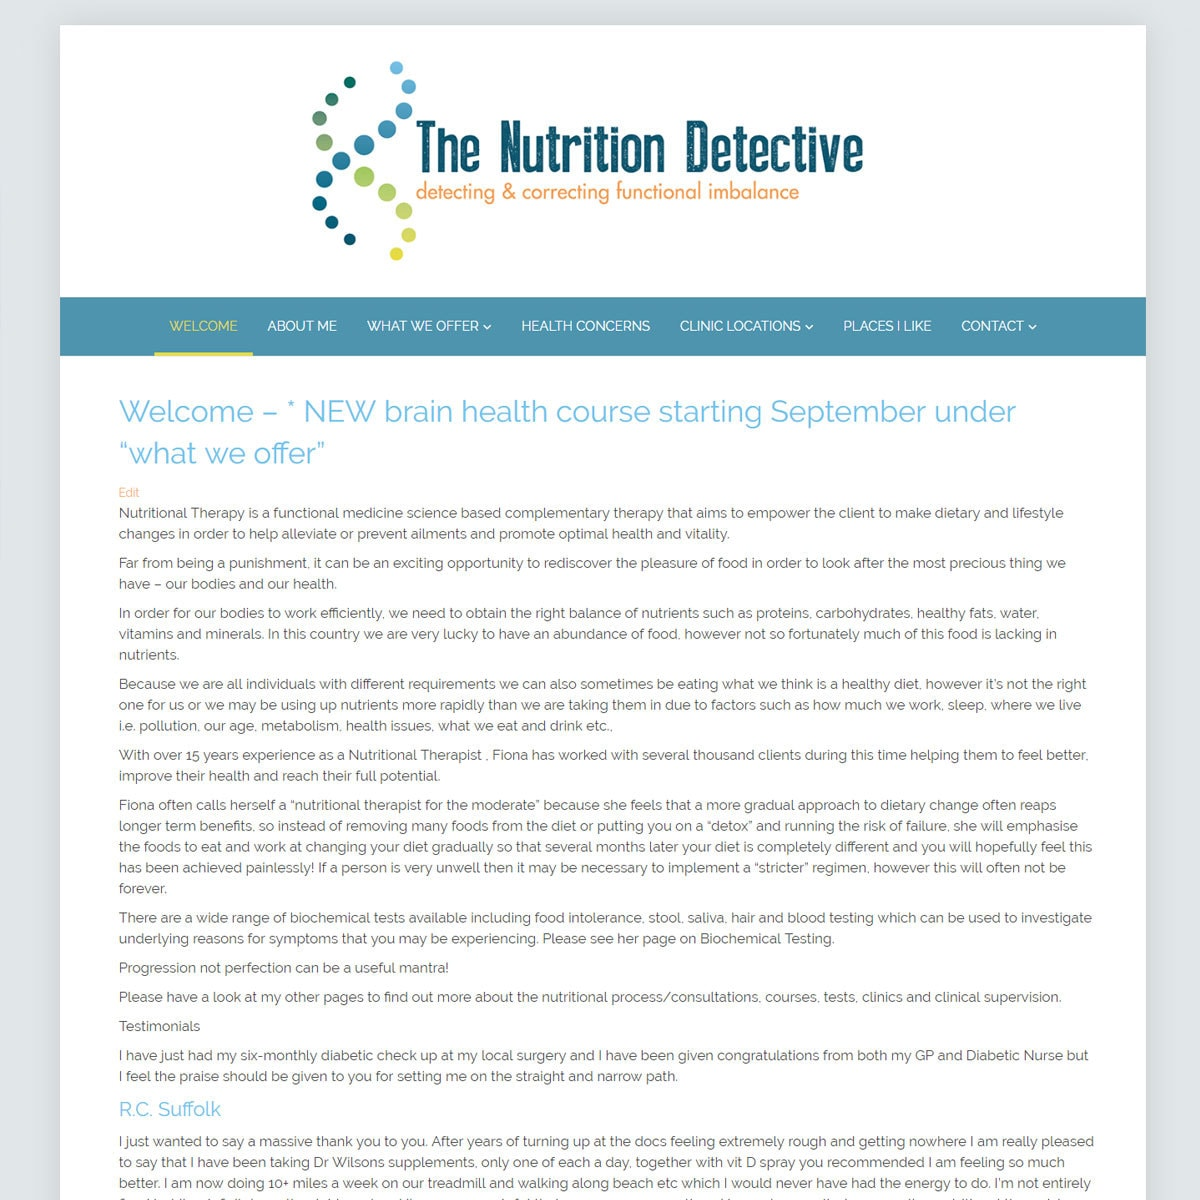 thenutritiondetective